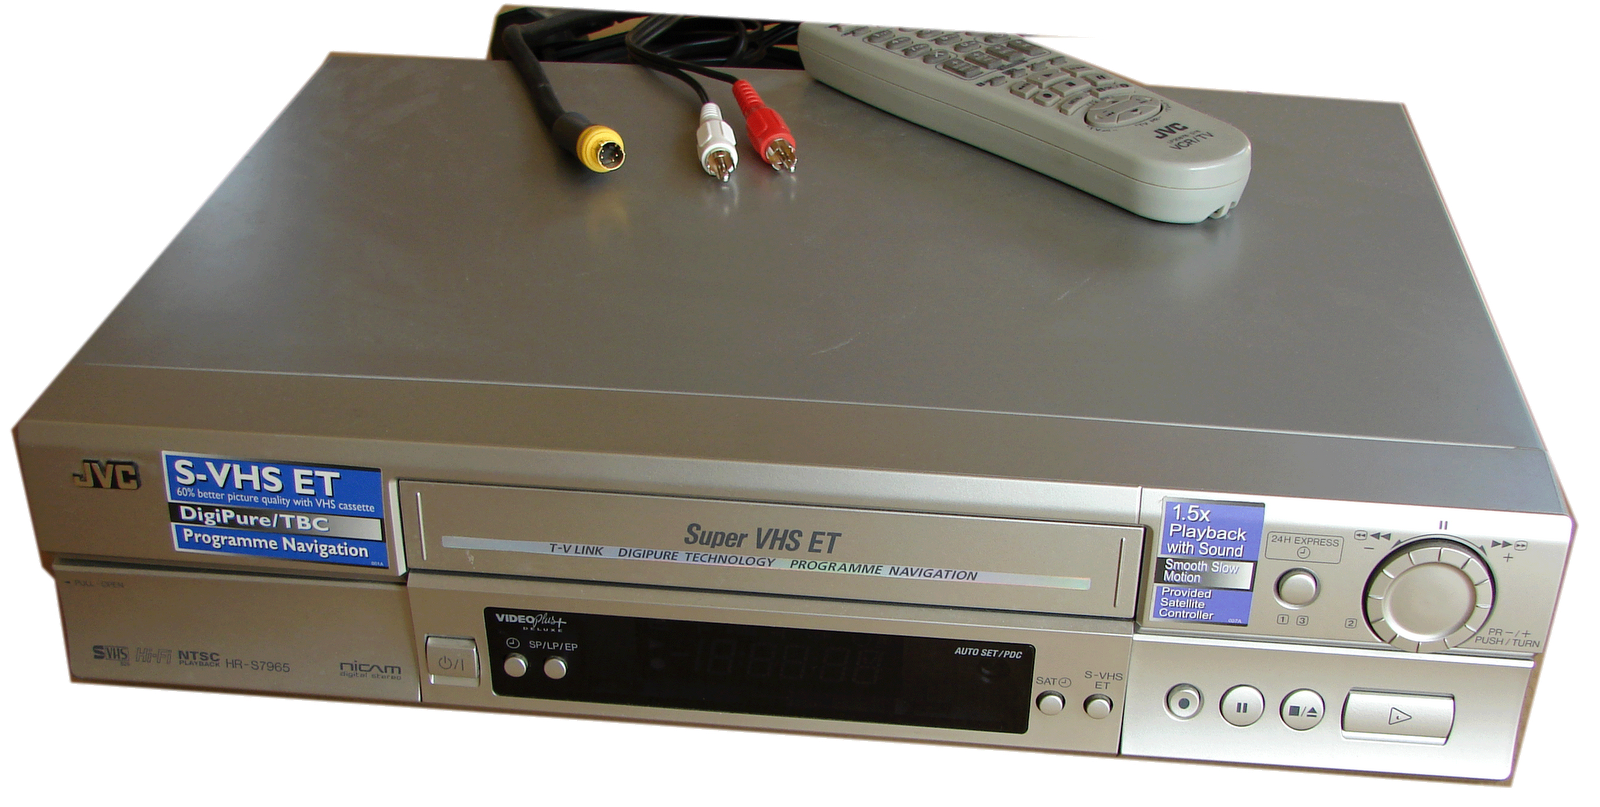 Vhs recording filter png. Video archiving archives ancestral